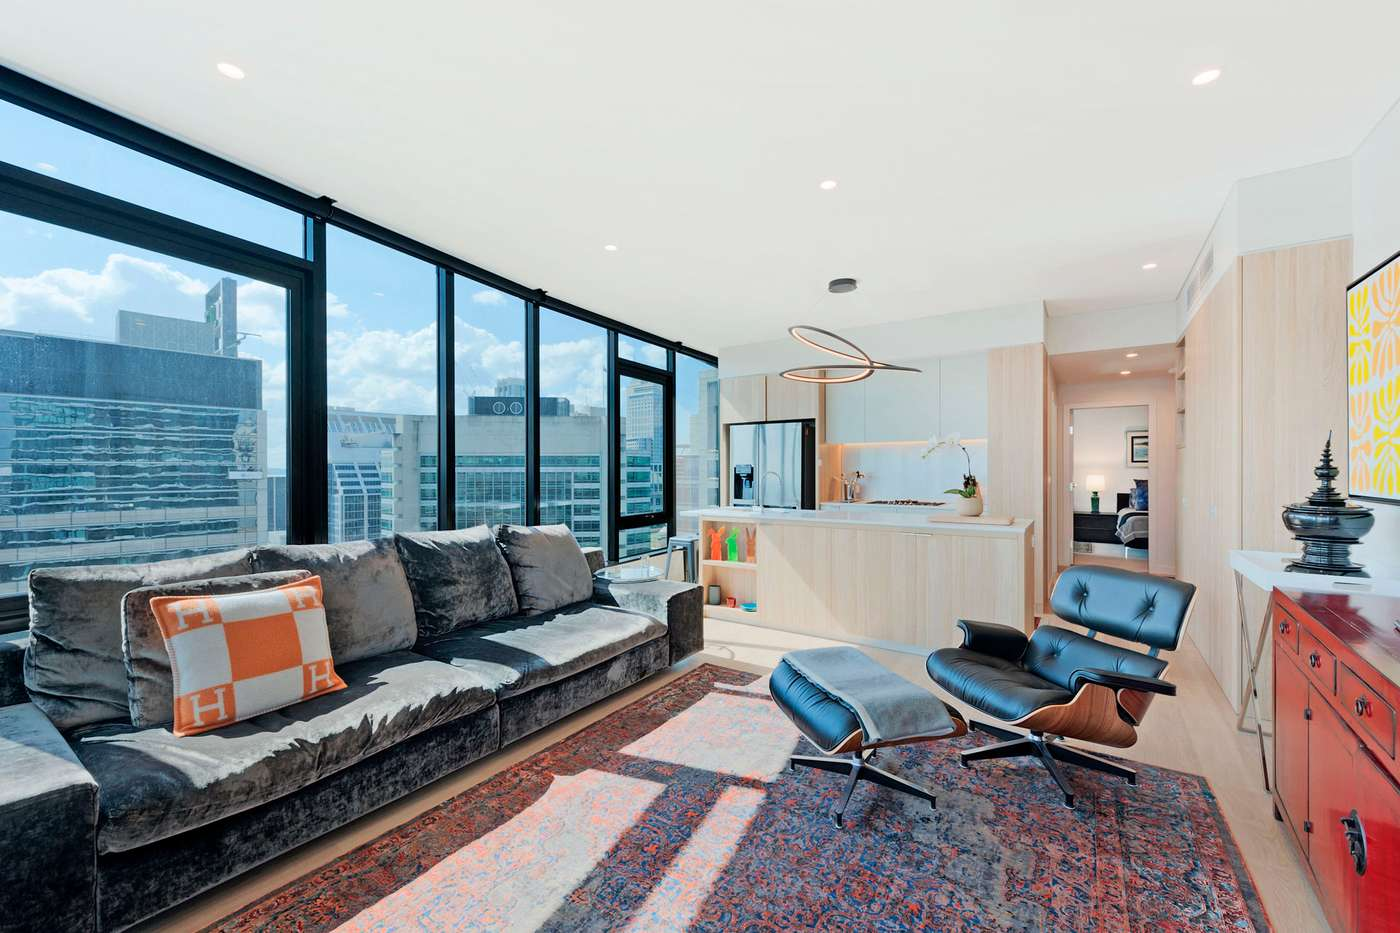 Main view of Homely apartment listing, 3302/38 York Street, Sydney, NSW 2000